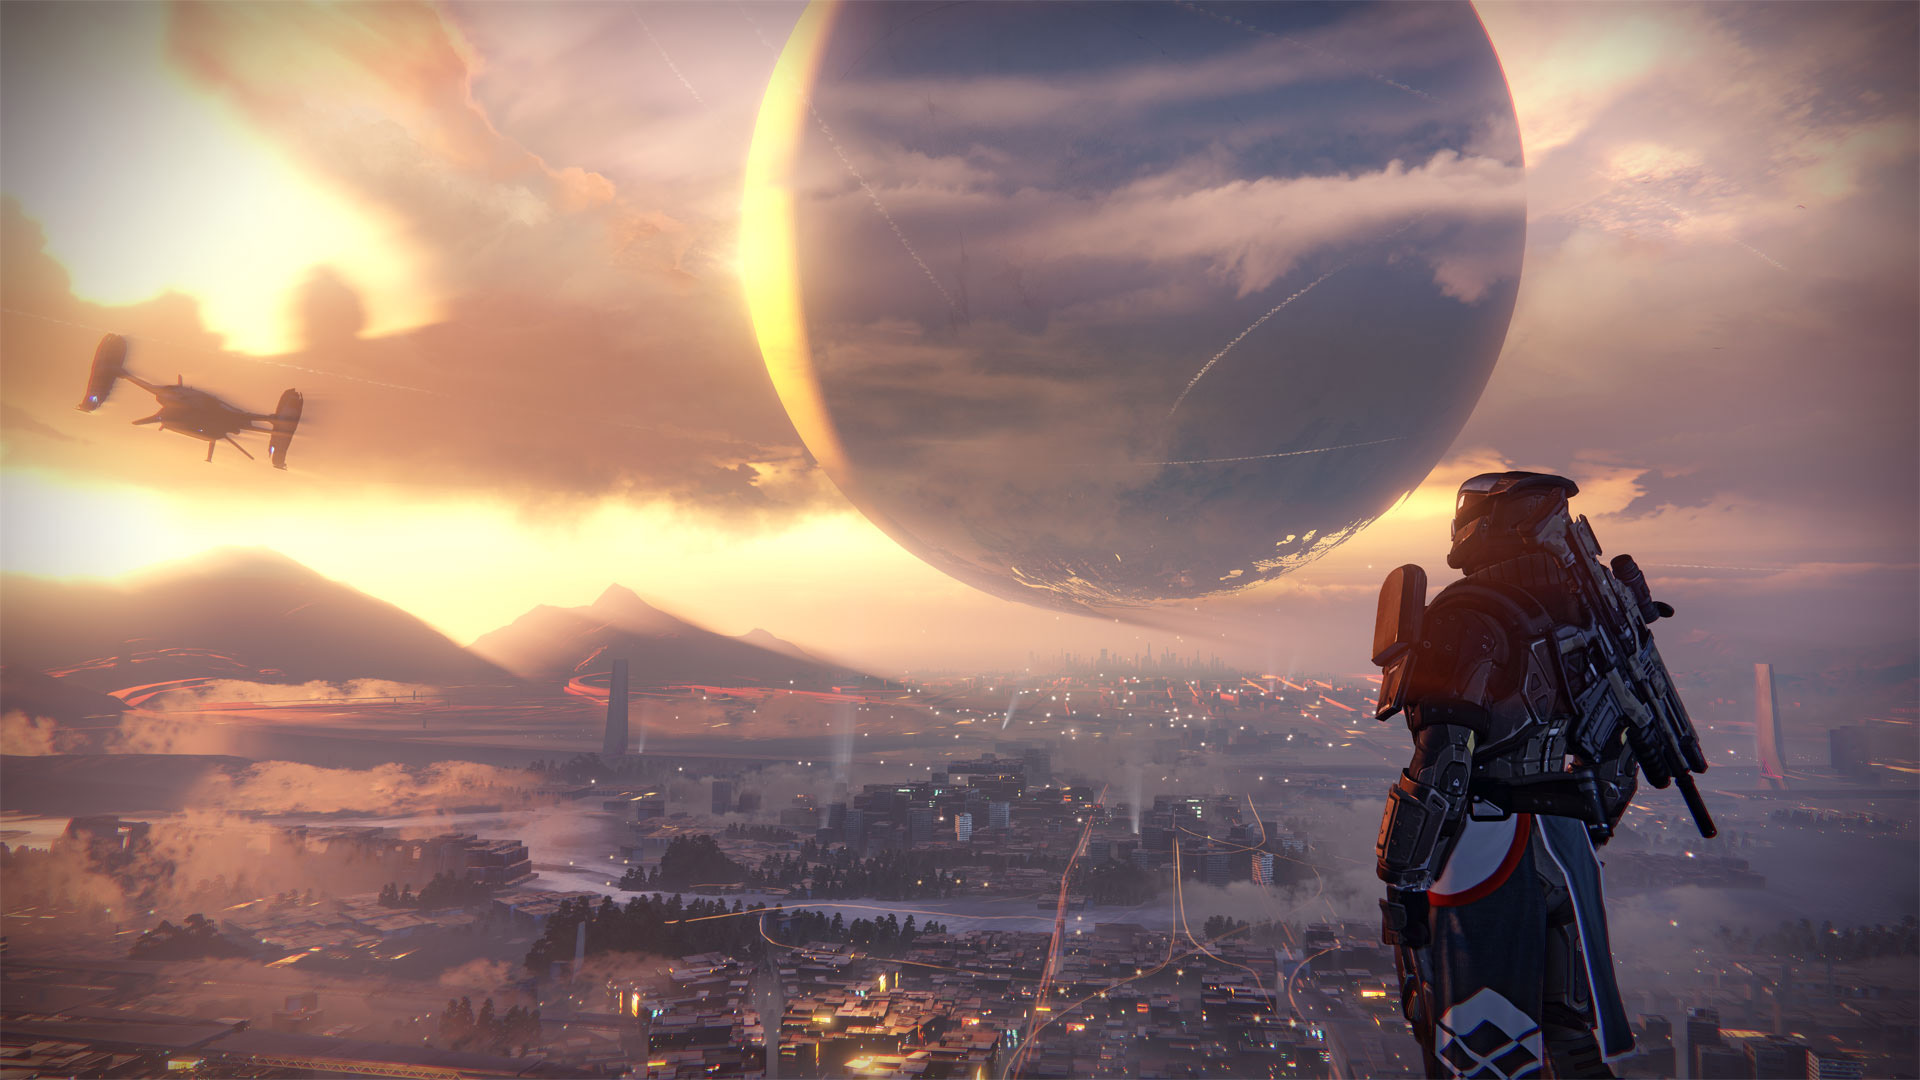 Destiny-Hd-Collection-For-Free-Download-wallpaper-wp3804536